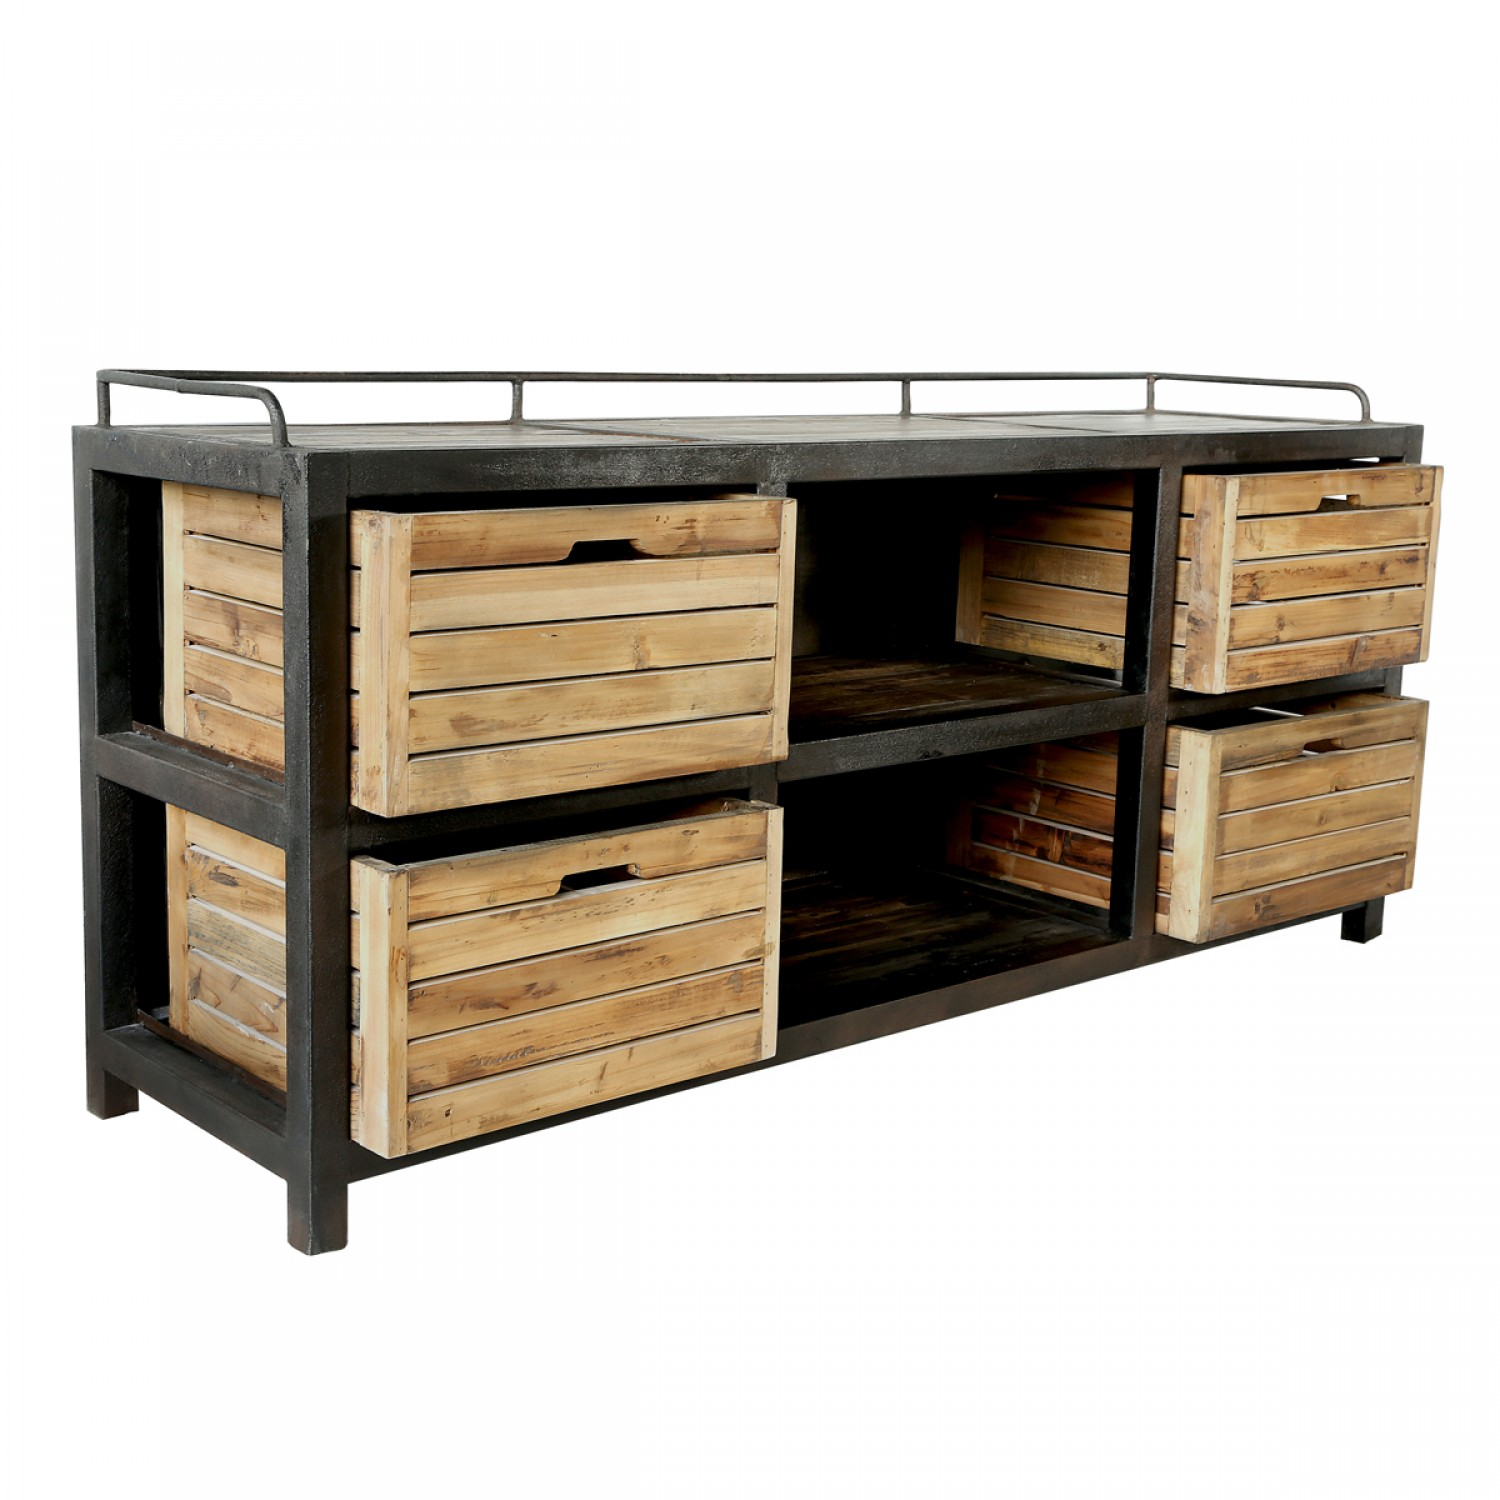 buffet 4 tiroirs en bois recycl et m tal koya design. Black Bedroom Furniture Sets. Home Design Ideas